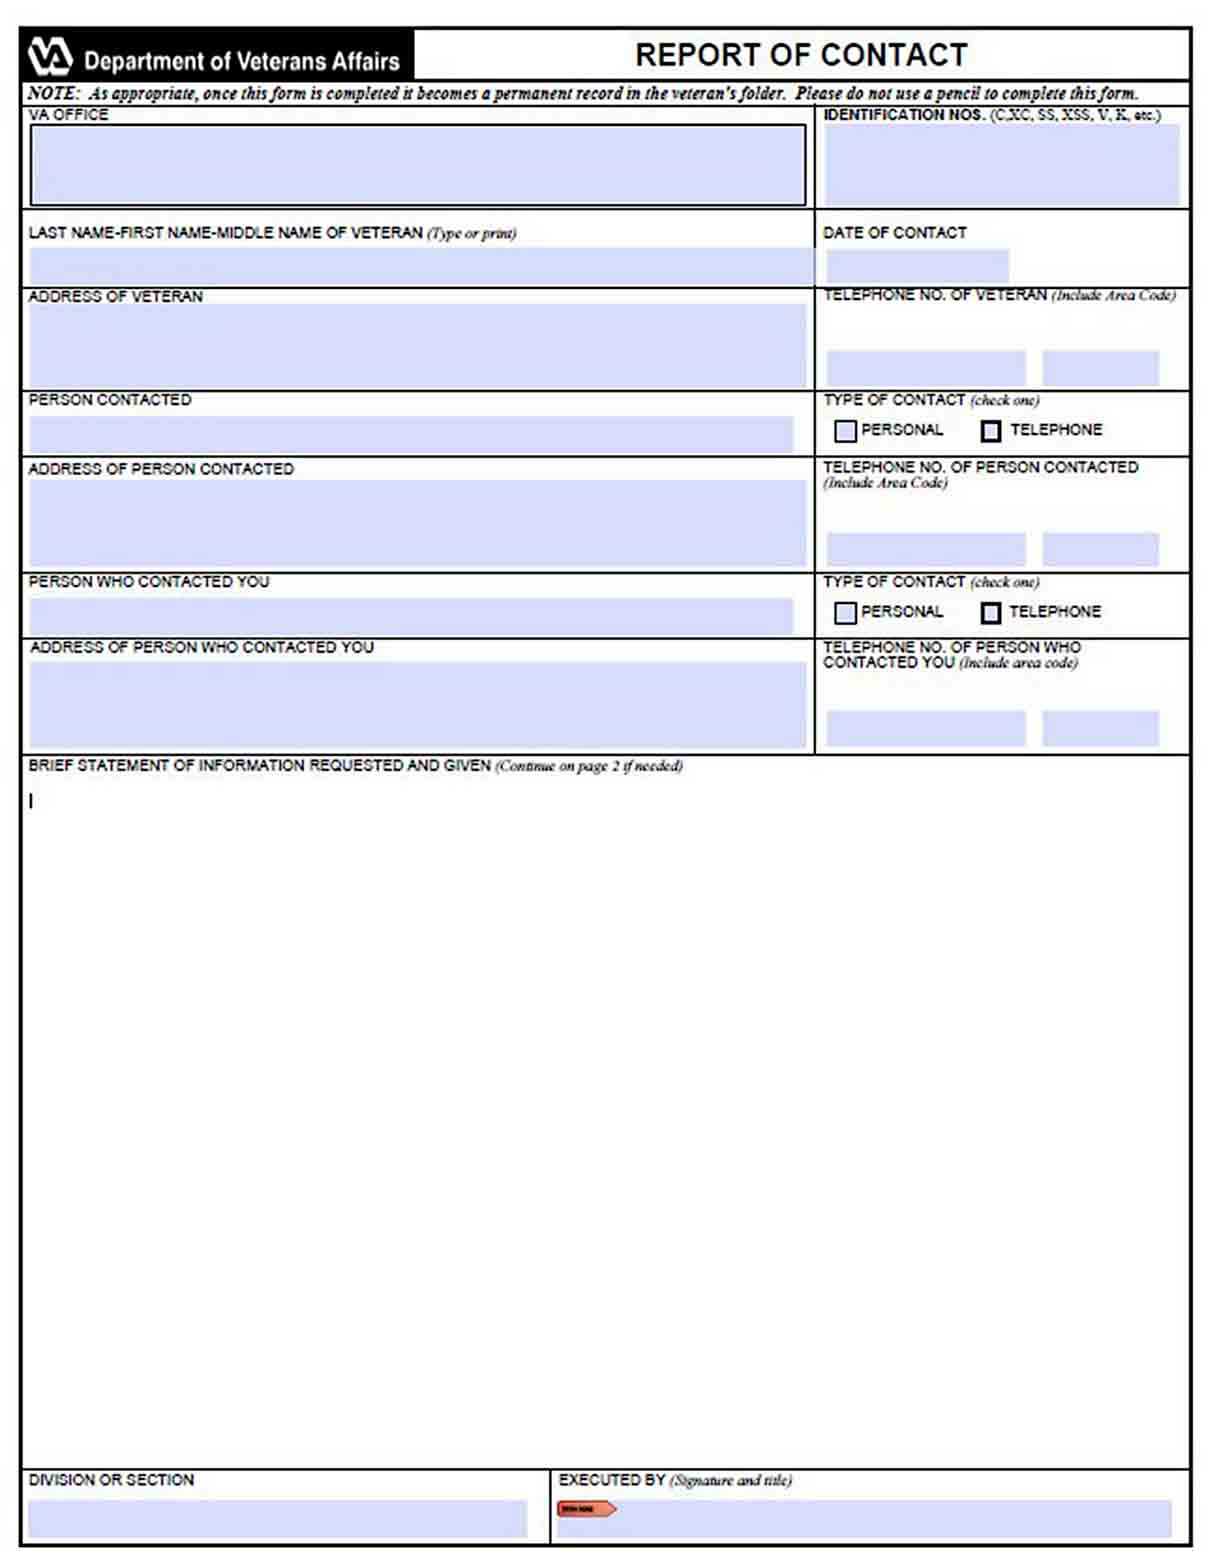 Blank Contact Report Template sample